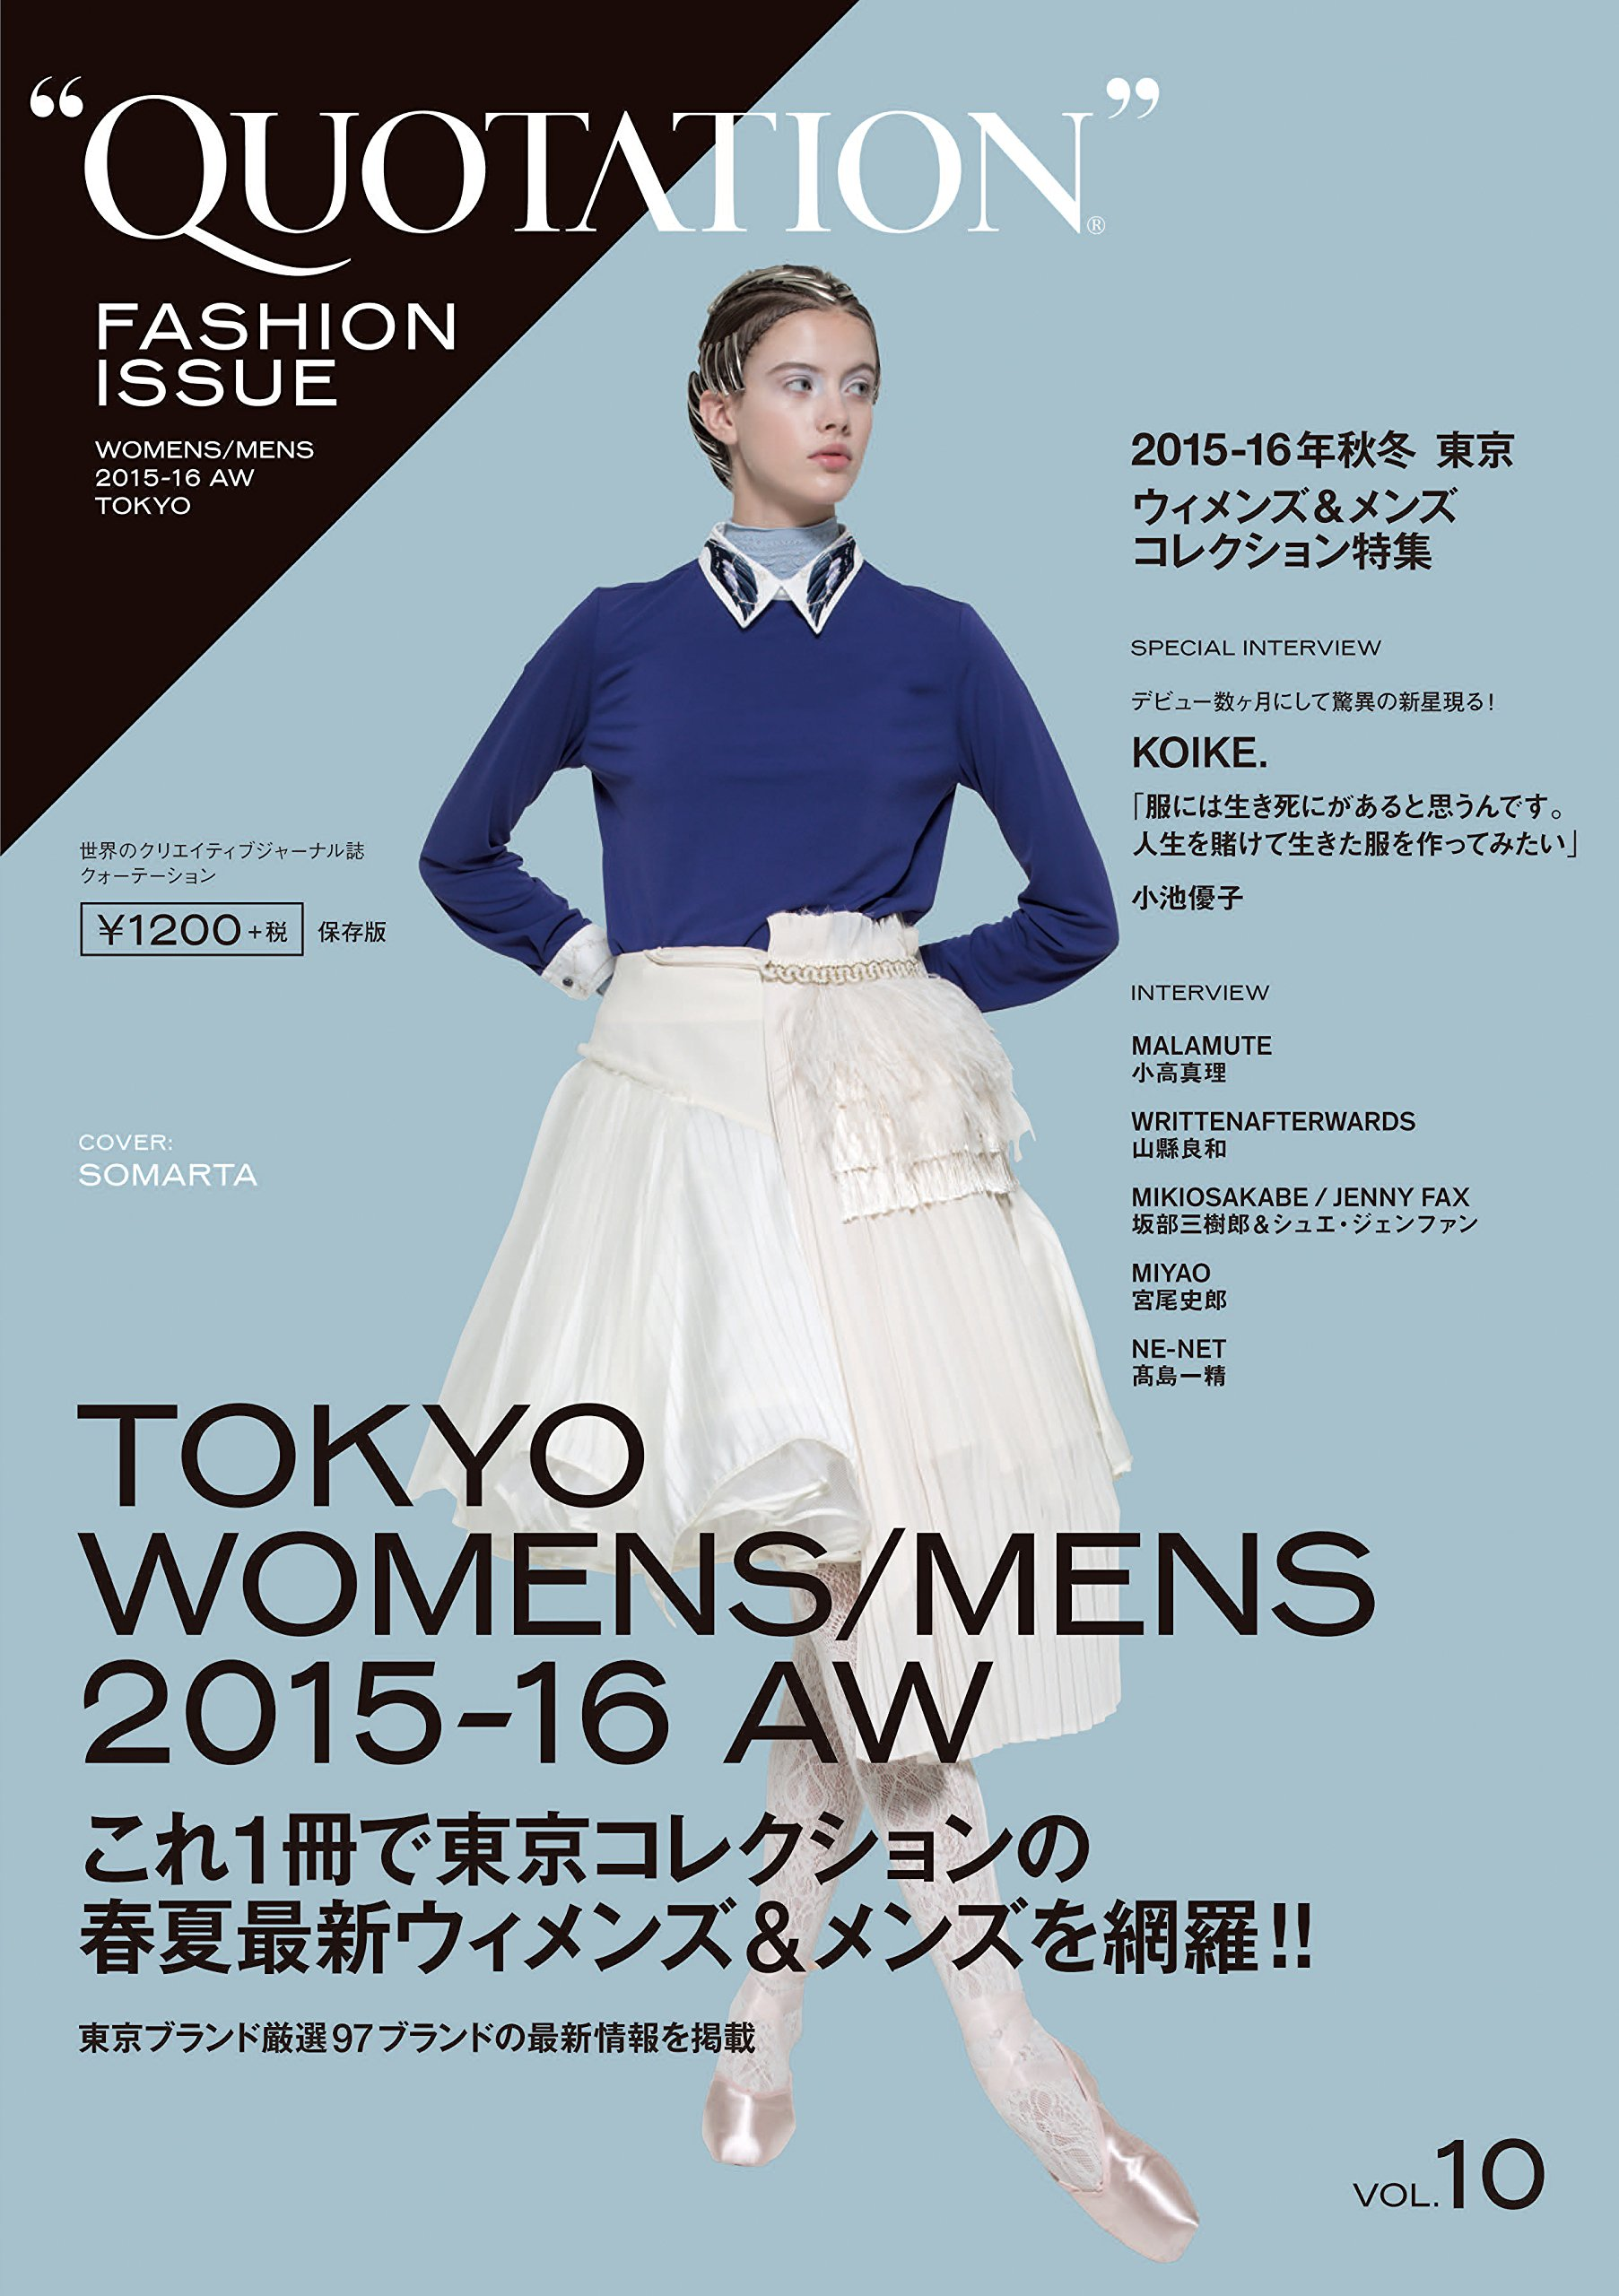 QUOTATION FASHION ISSUE VOL.11